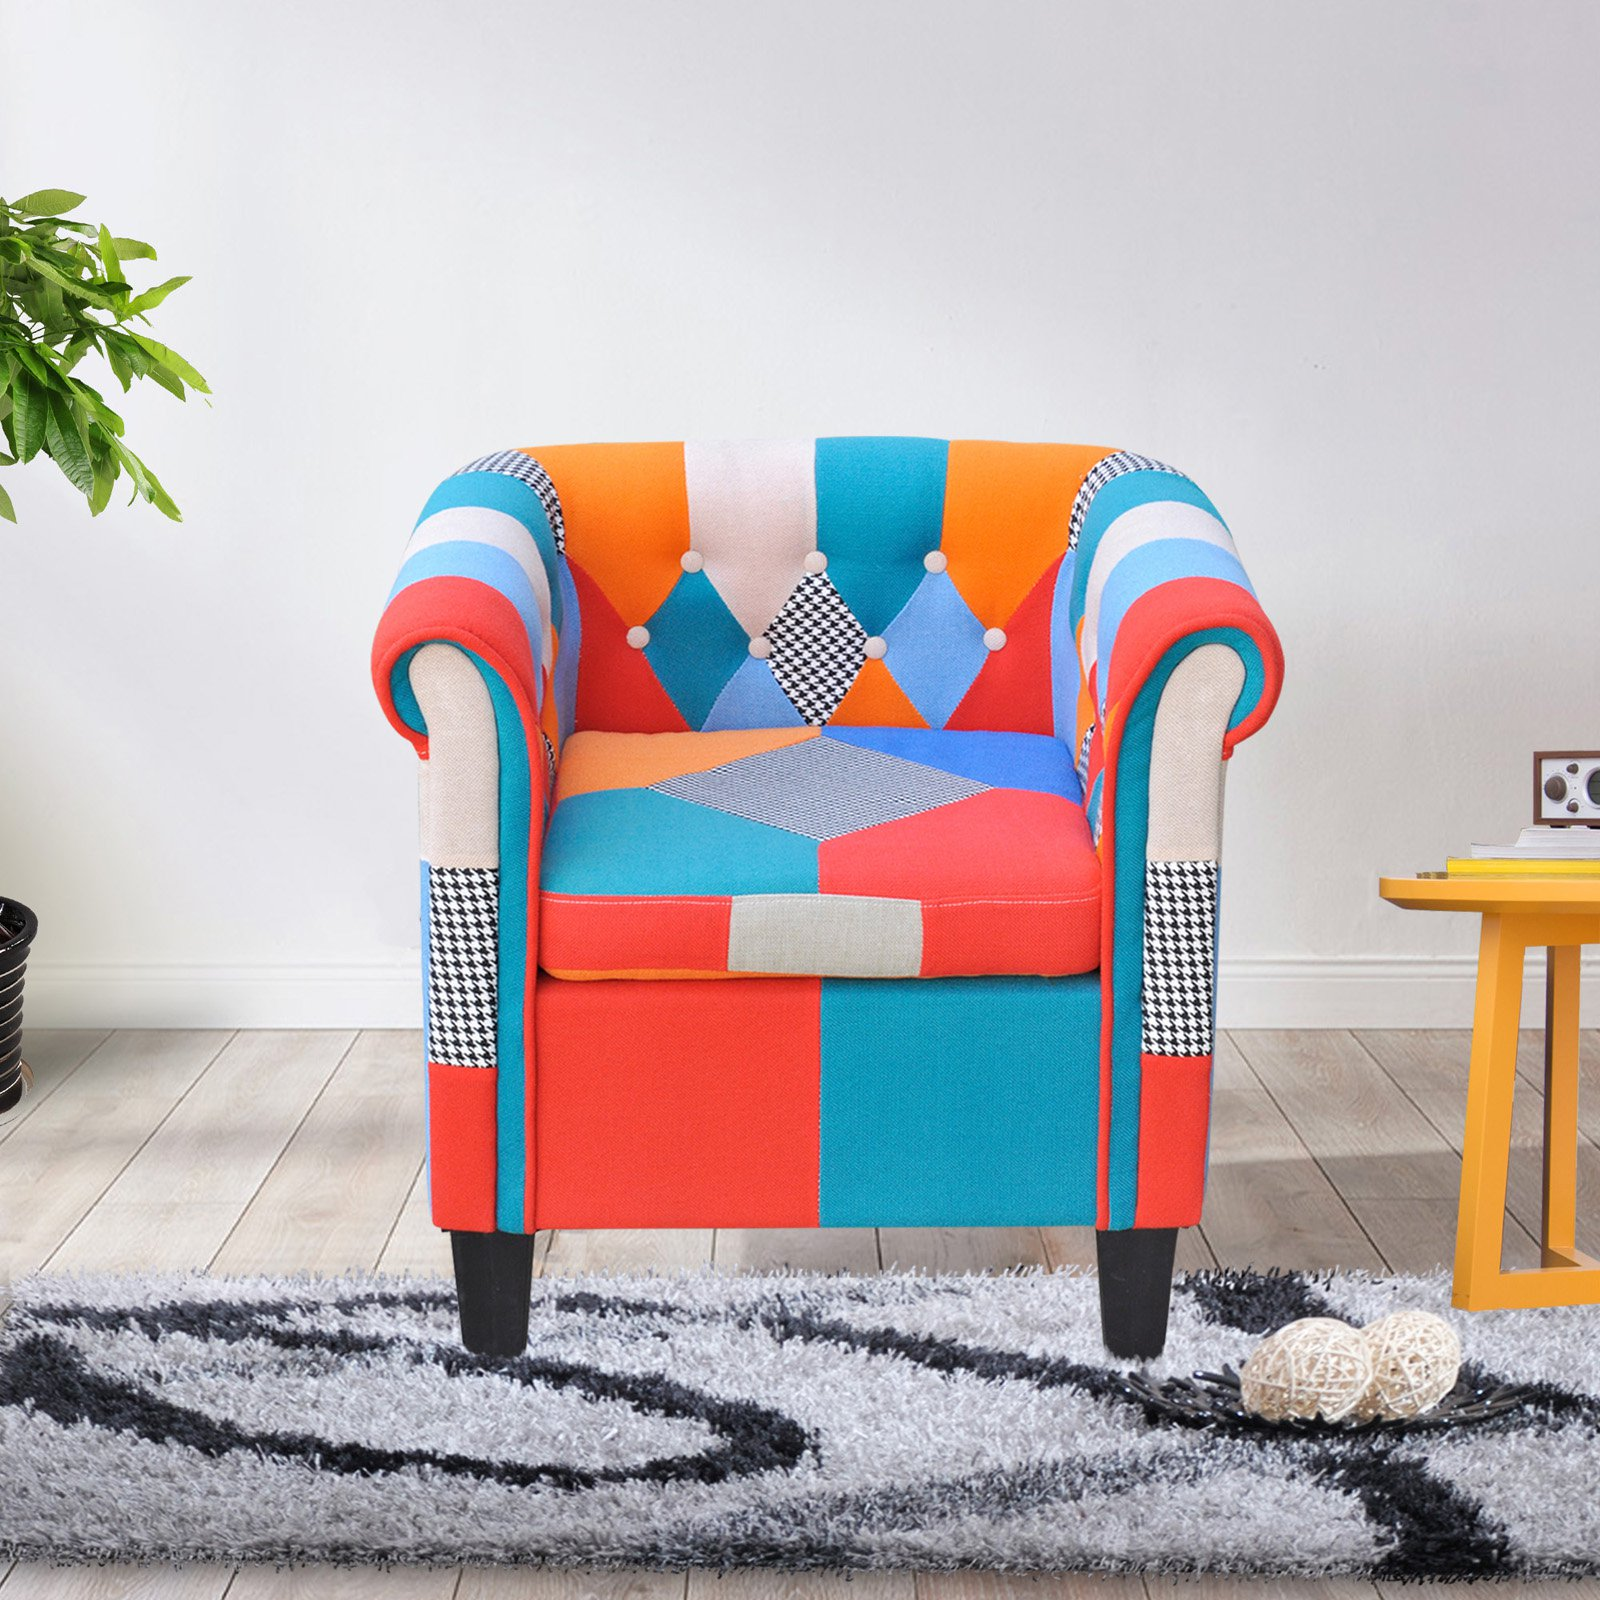 Cloud Mountain Multi-Color Patchwork Tufted Armchair by Cloud Mountain